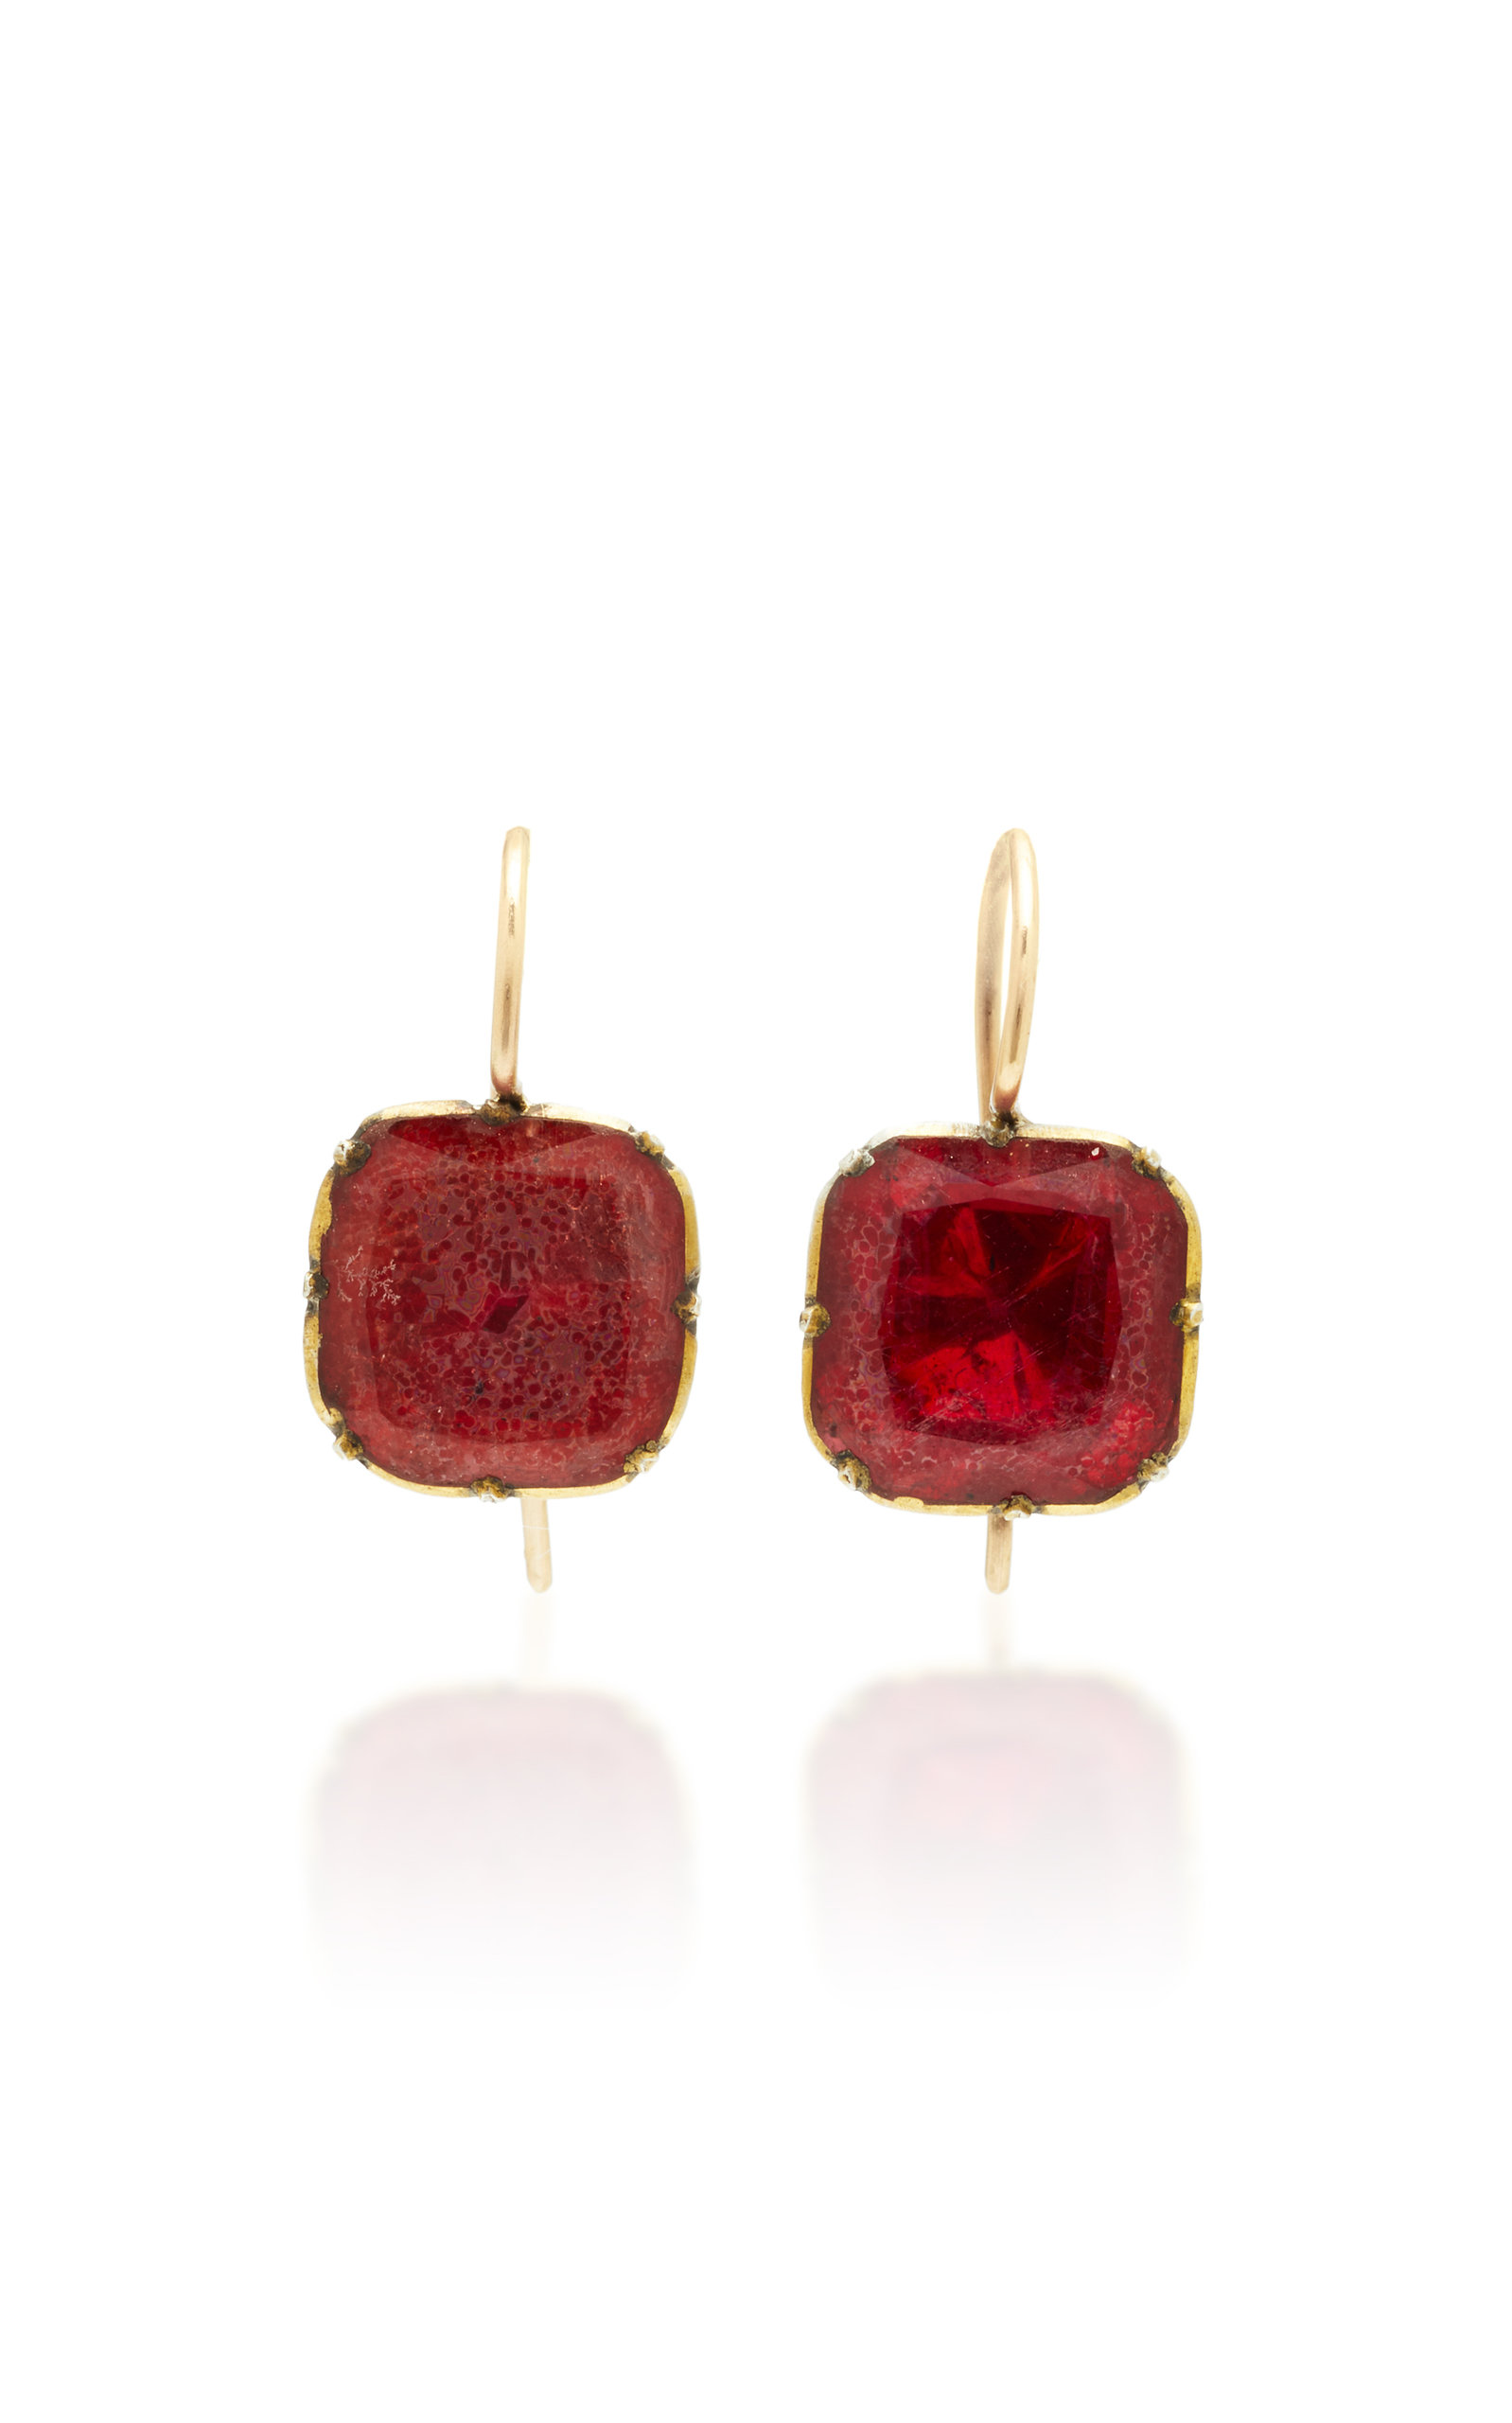 VELA ONE-OF-A-KIND GEORGIAN RED PASTE EARRINGS